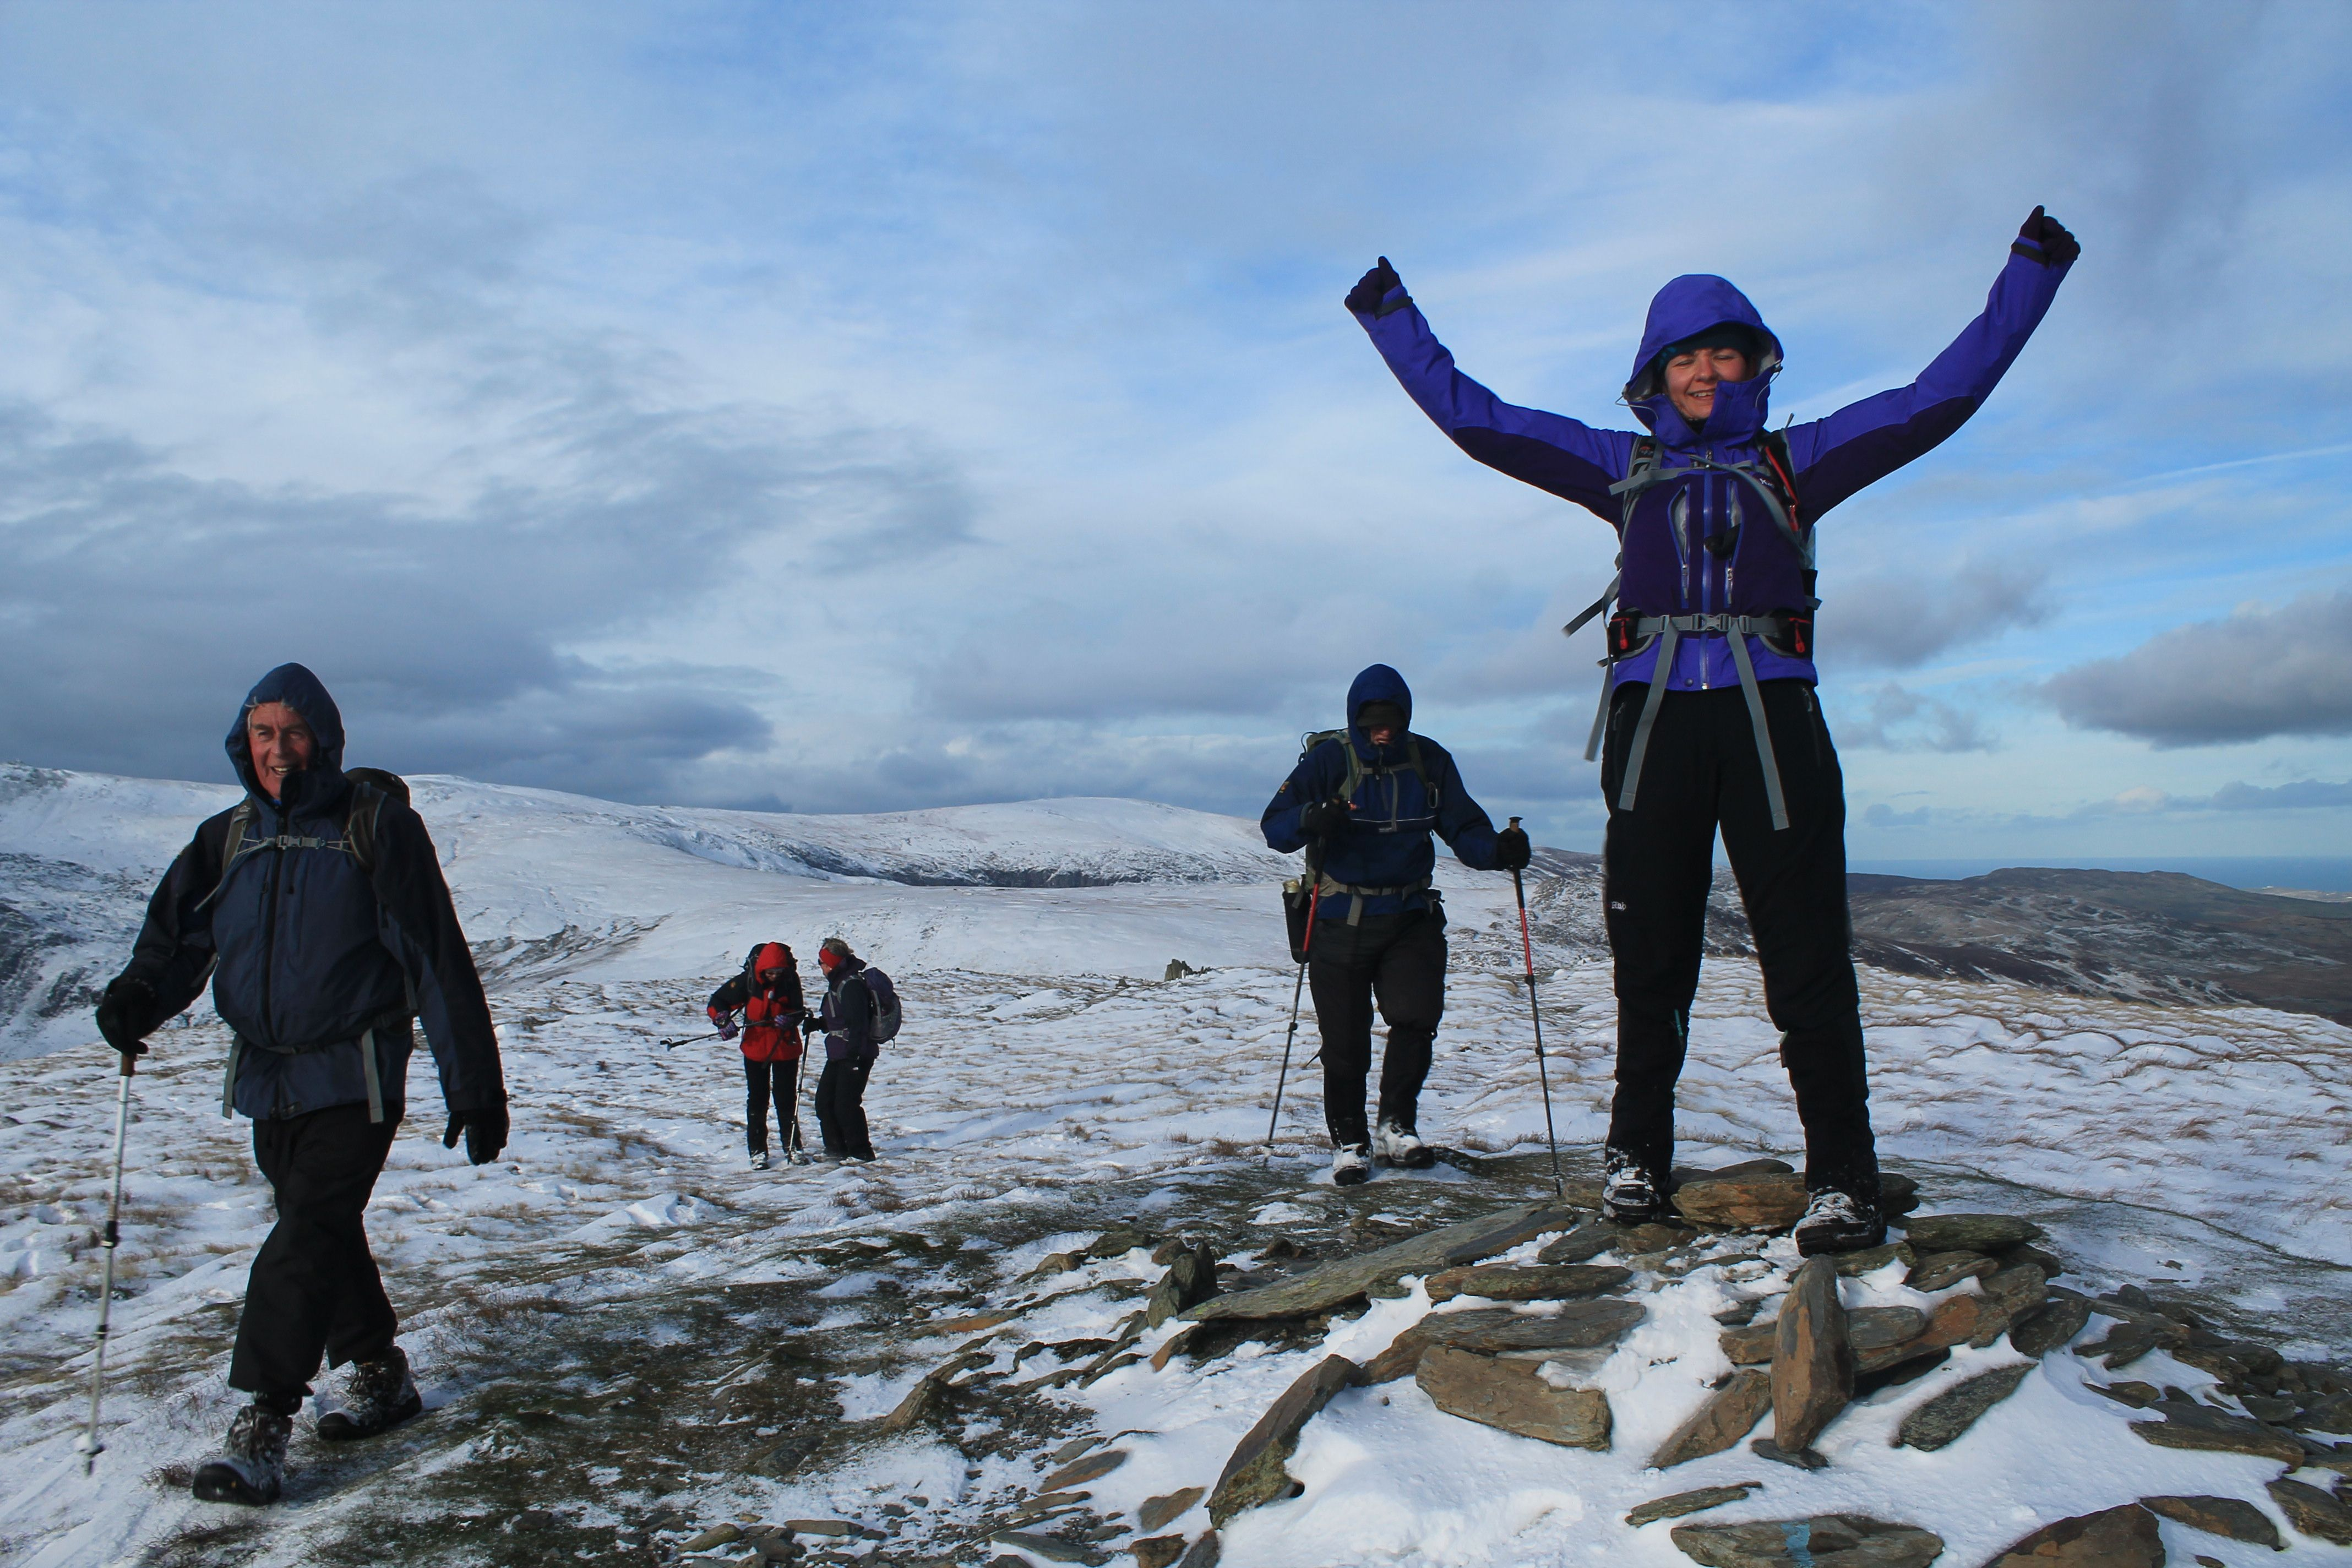 Claire on Pen Llithrig y Wrach